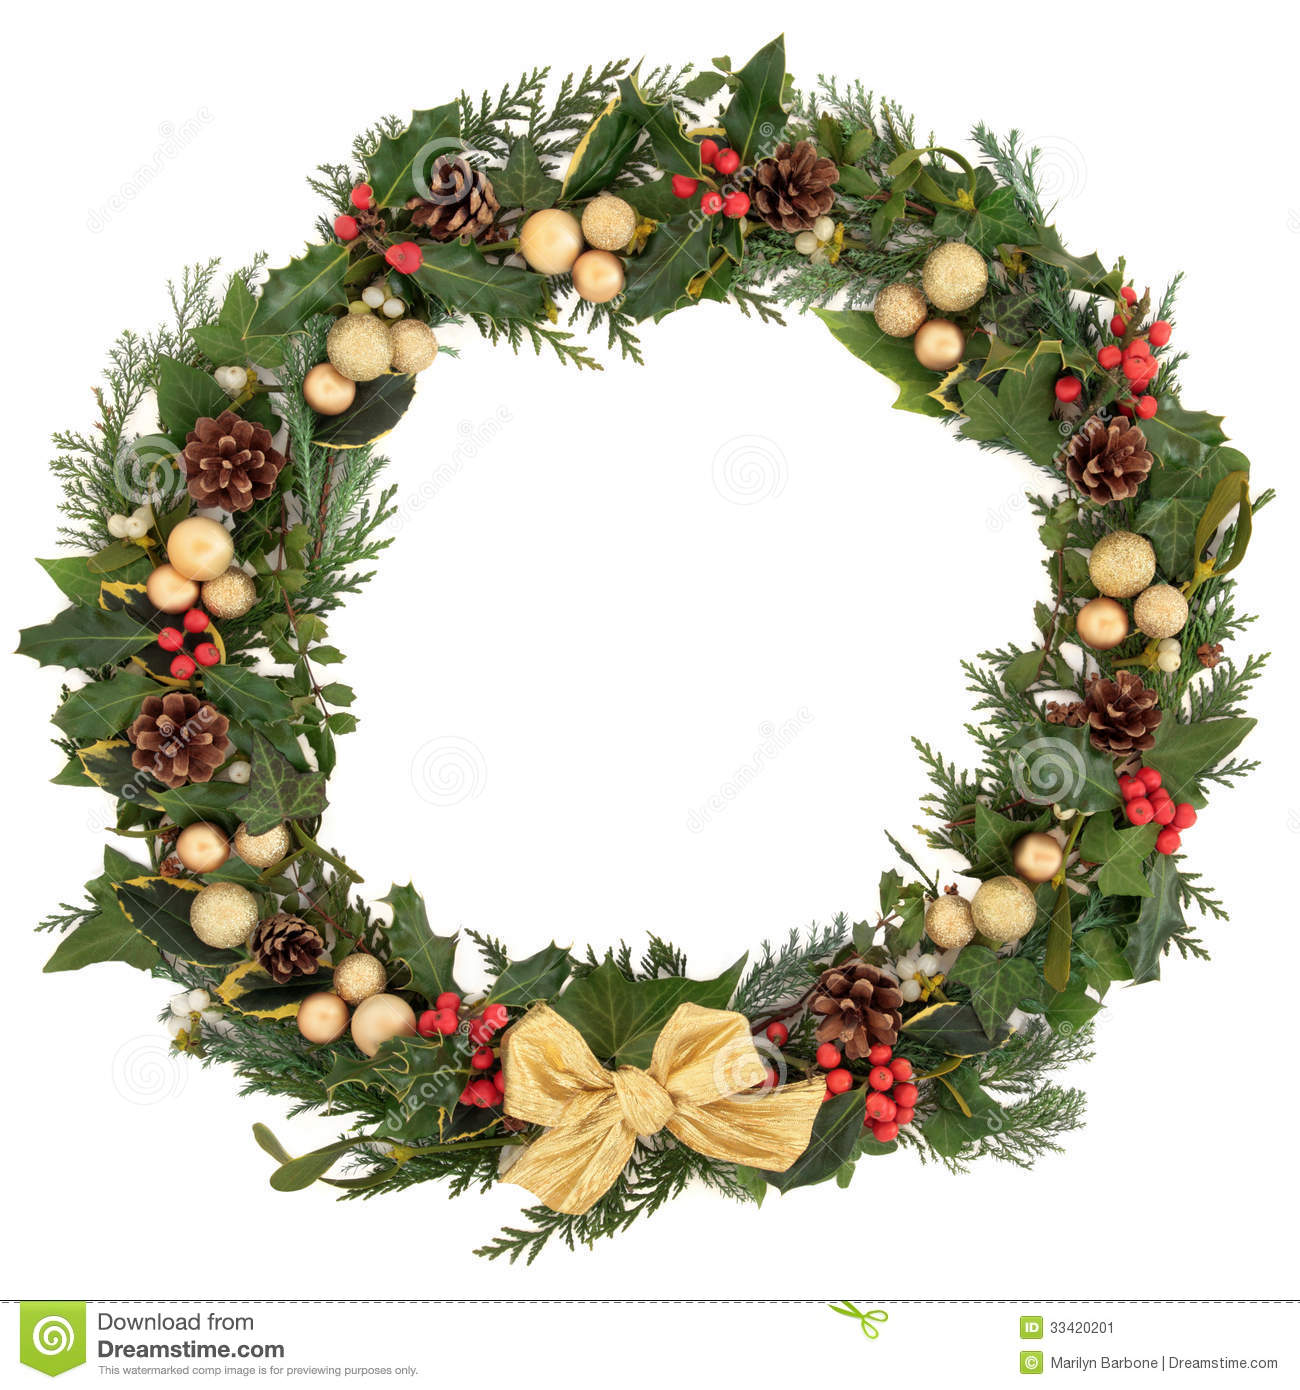 Christmas Holly Wreath Christmas floral wreath